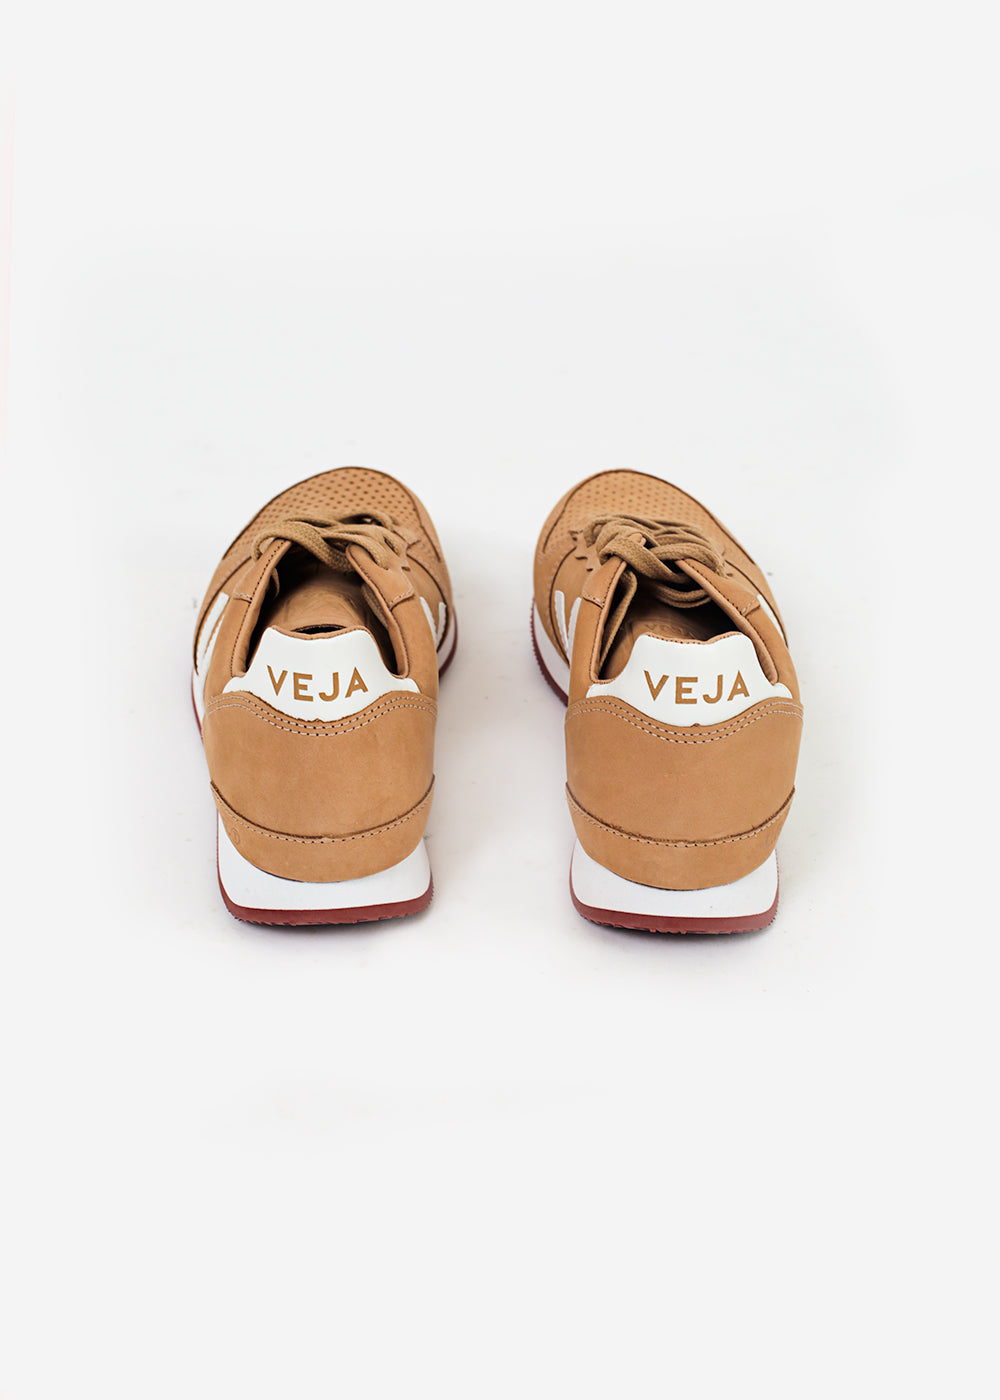 Veja Holiday Bastille Nubuck Sneaker — Shop sustainable fashion and slow fashion at New Classics Studios